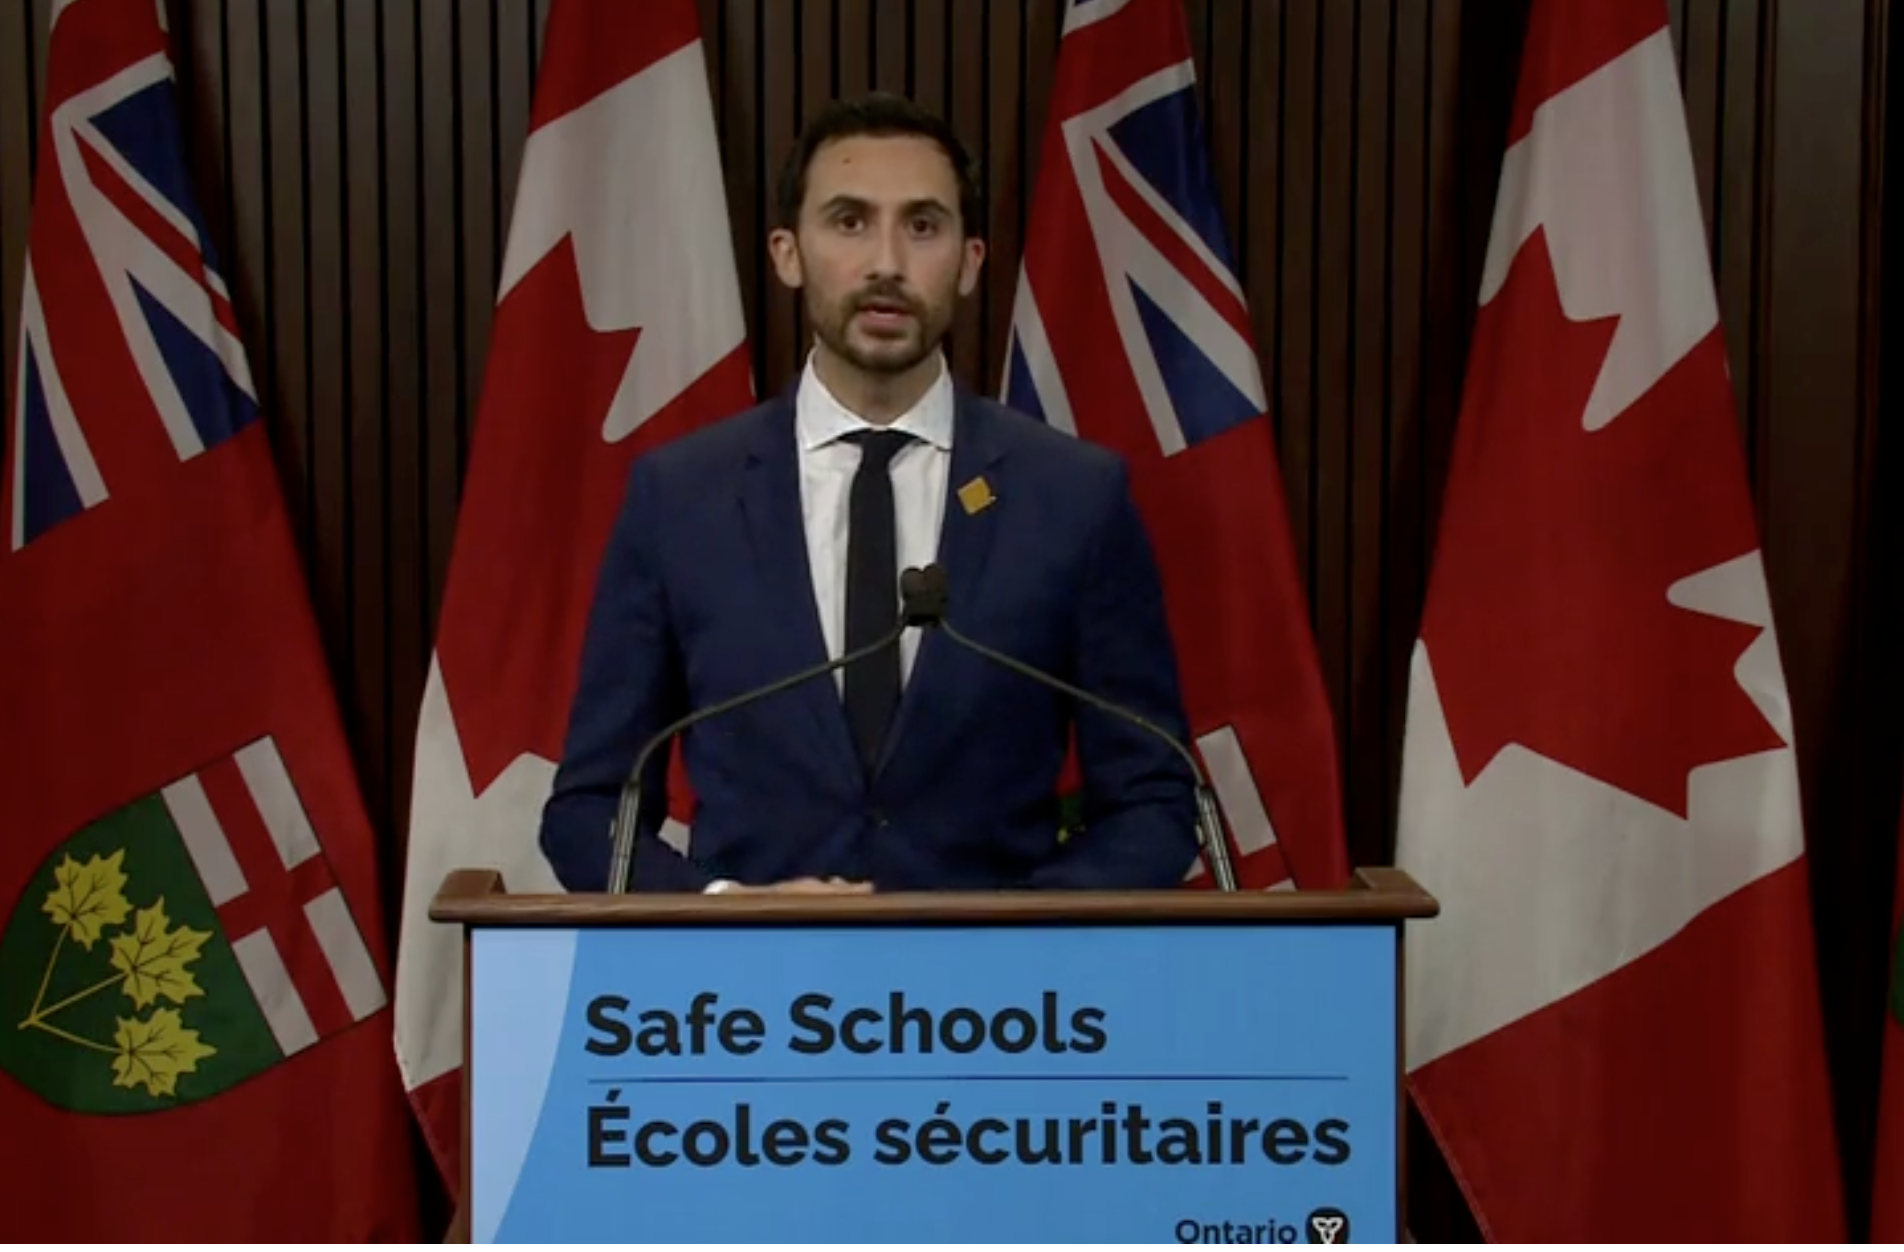 Education minister says asymptomatic testing target will improve safety in schools, but opposition says it's 'not adequate'